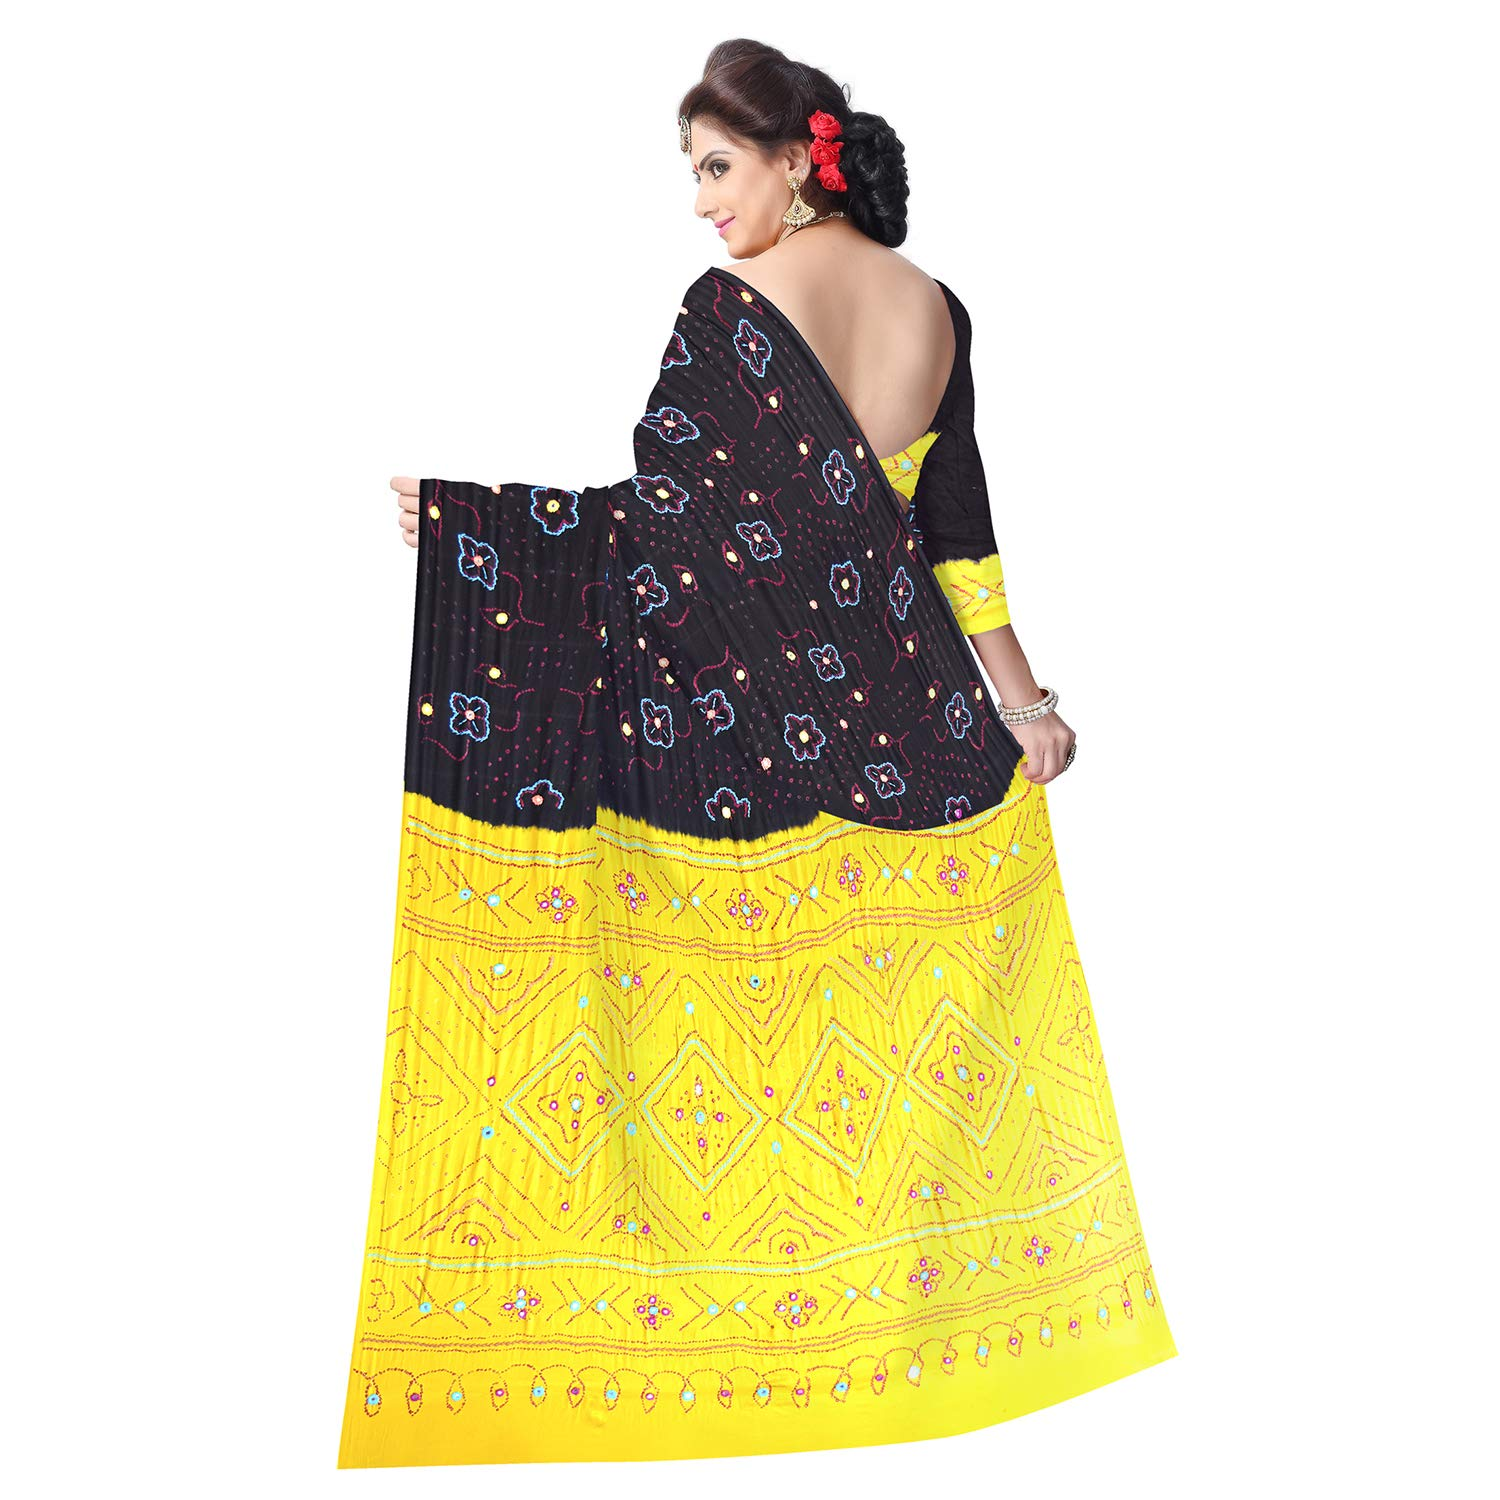 80c89254da83b Kala Sanskruti Women s Black Gaji Silk Bandhej Saree  Amazon.in  Clothing    Accessories